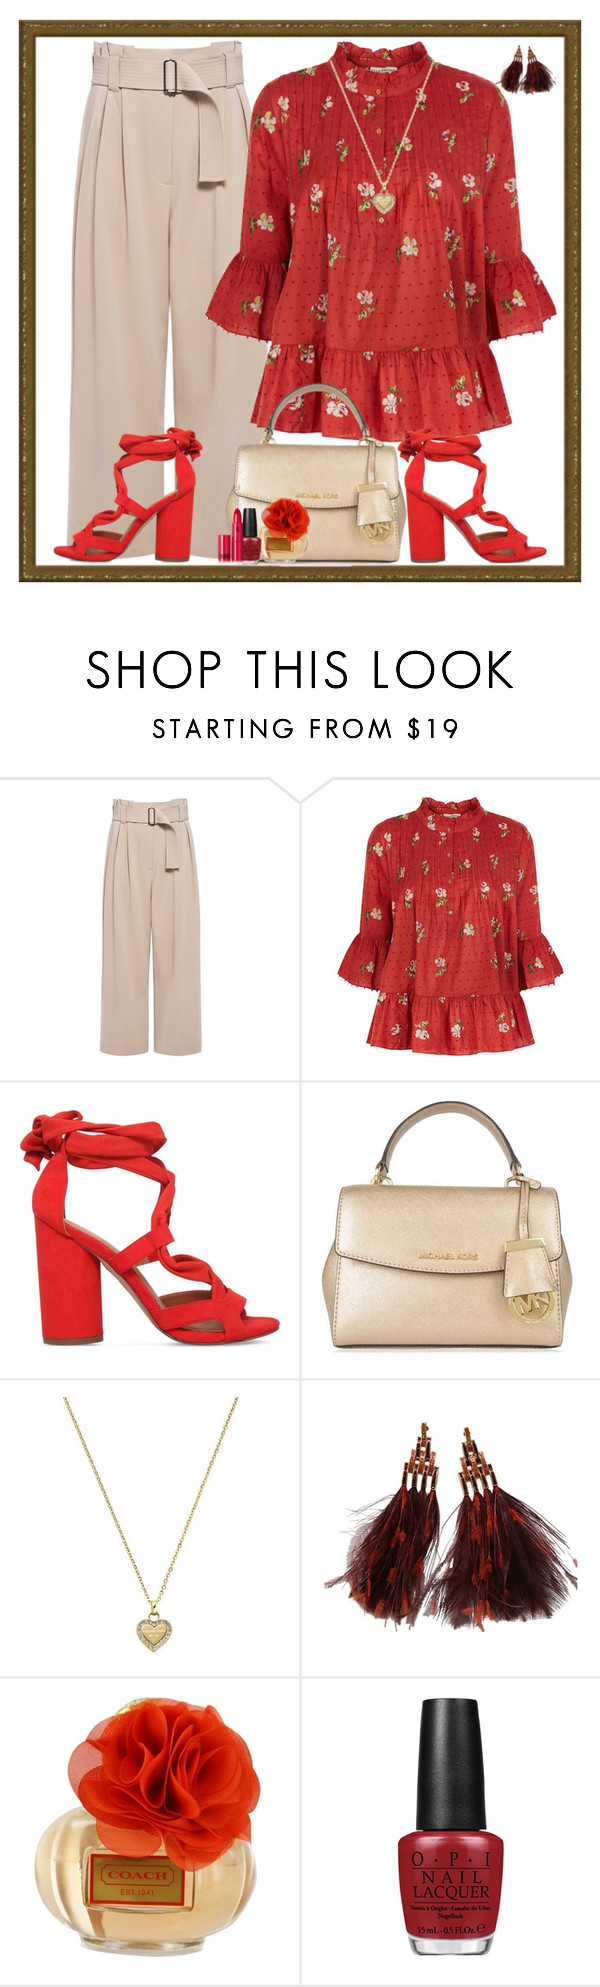 """""""Daytime Decadence"""" by winscotthk ❤ liked on Polyvore featuring A.L.C., Ulla Johnson, KG Kurt Geiger, MICHAEL Michael Kors, Michael Kors, Louis Vuitton, Coach, OPI and Lipstick Queen"""